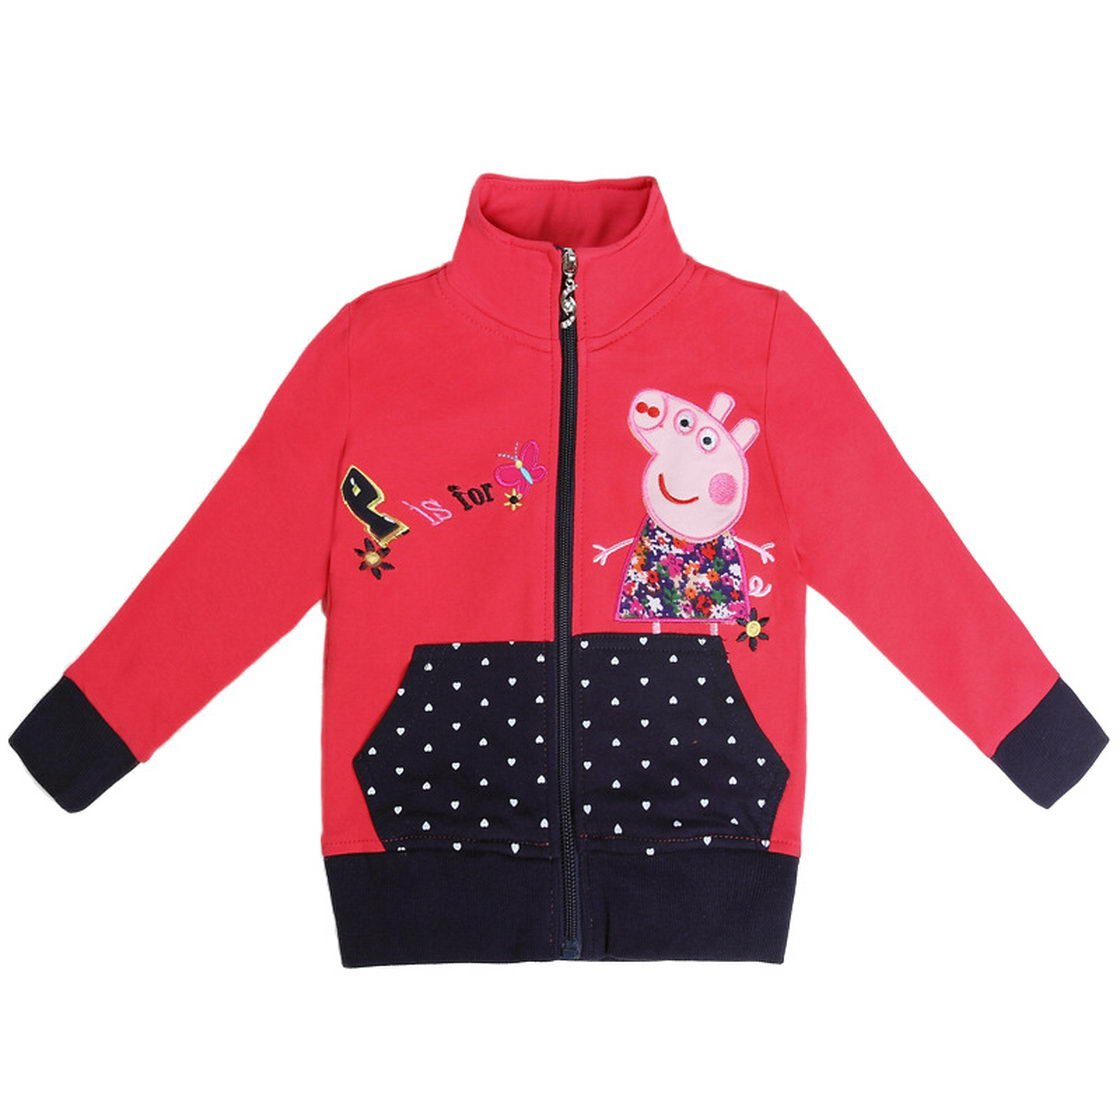 Peppa Pig Little Girls Long Sleeve Cartoon Fleece Sweatshirt Jacket 1-6Y Tiful